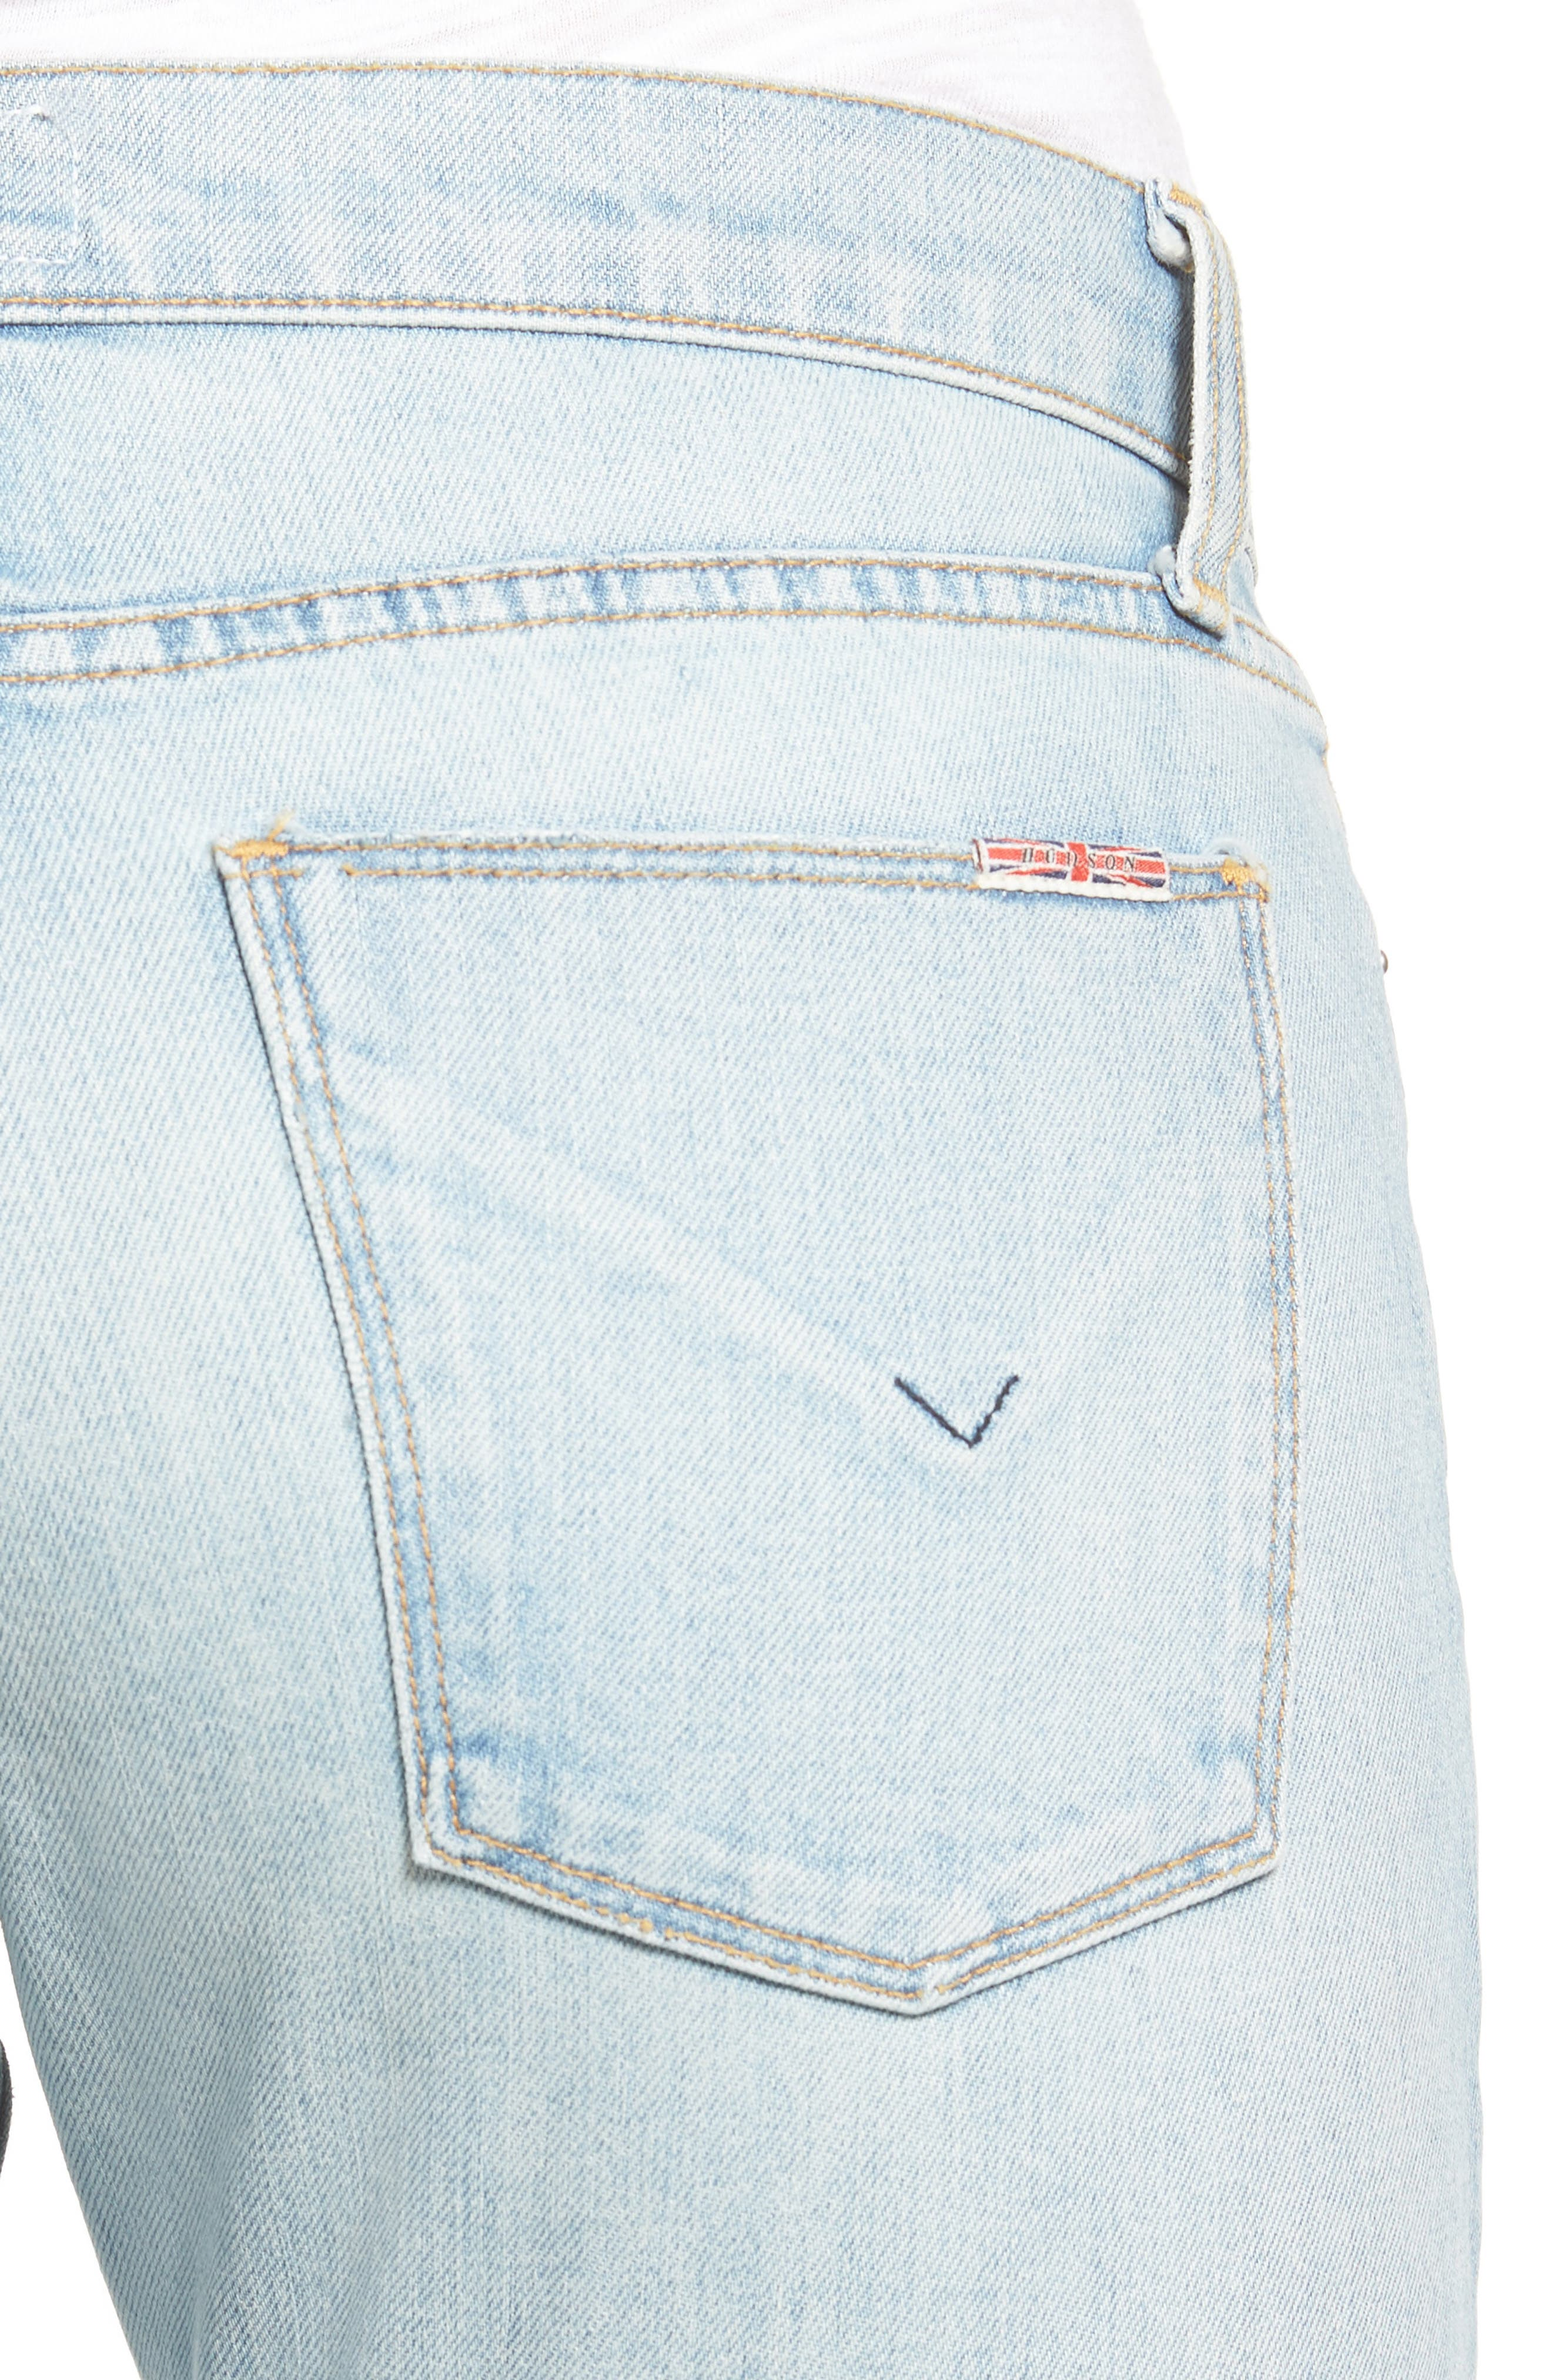 Riley Crop Relaxed Straight Leg Jeans,                             Alternate thumbnail 12, color,